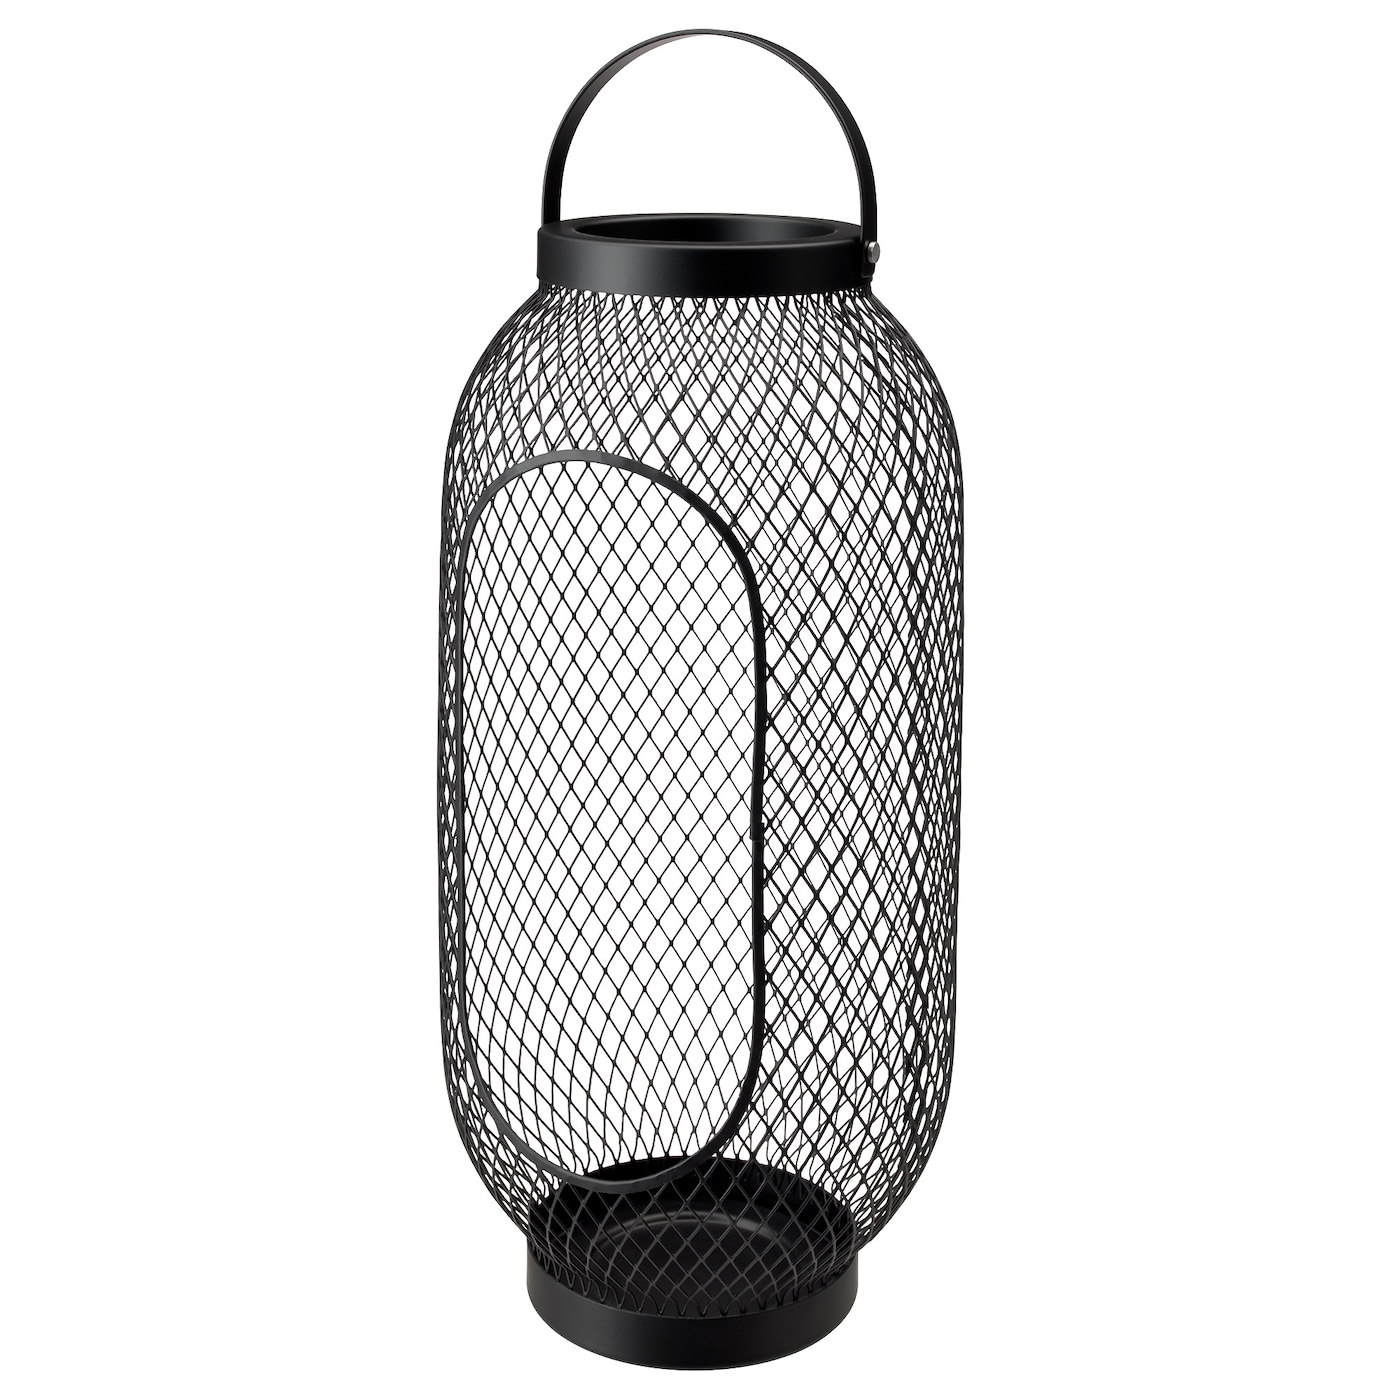 IKEA TOPPIG lantern for block candle